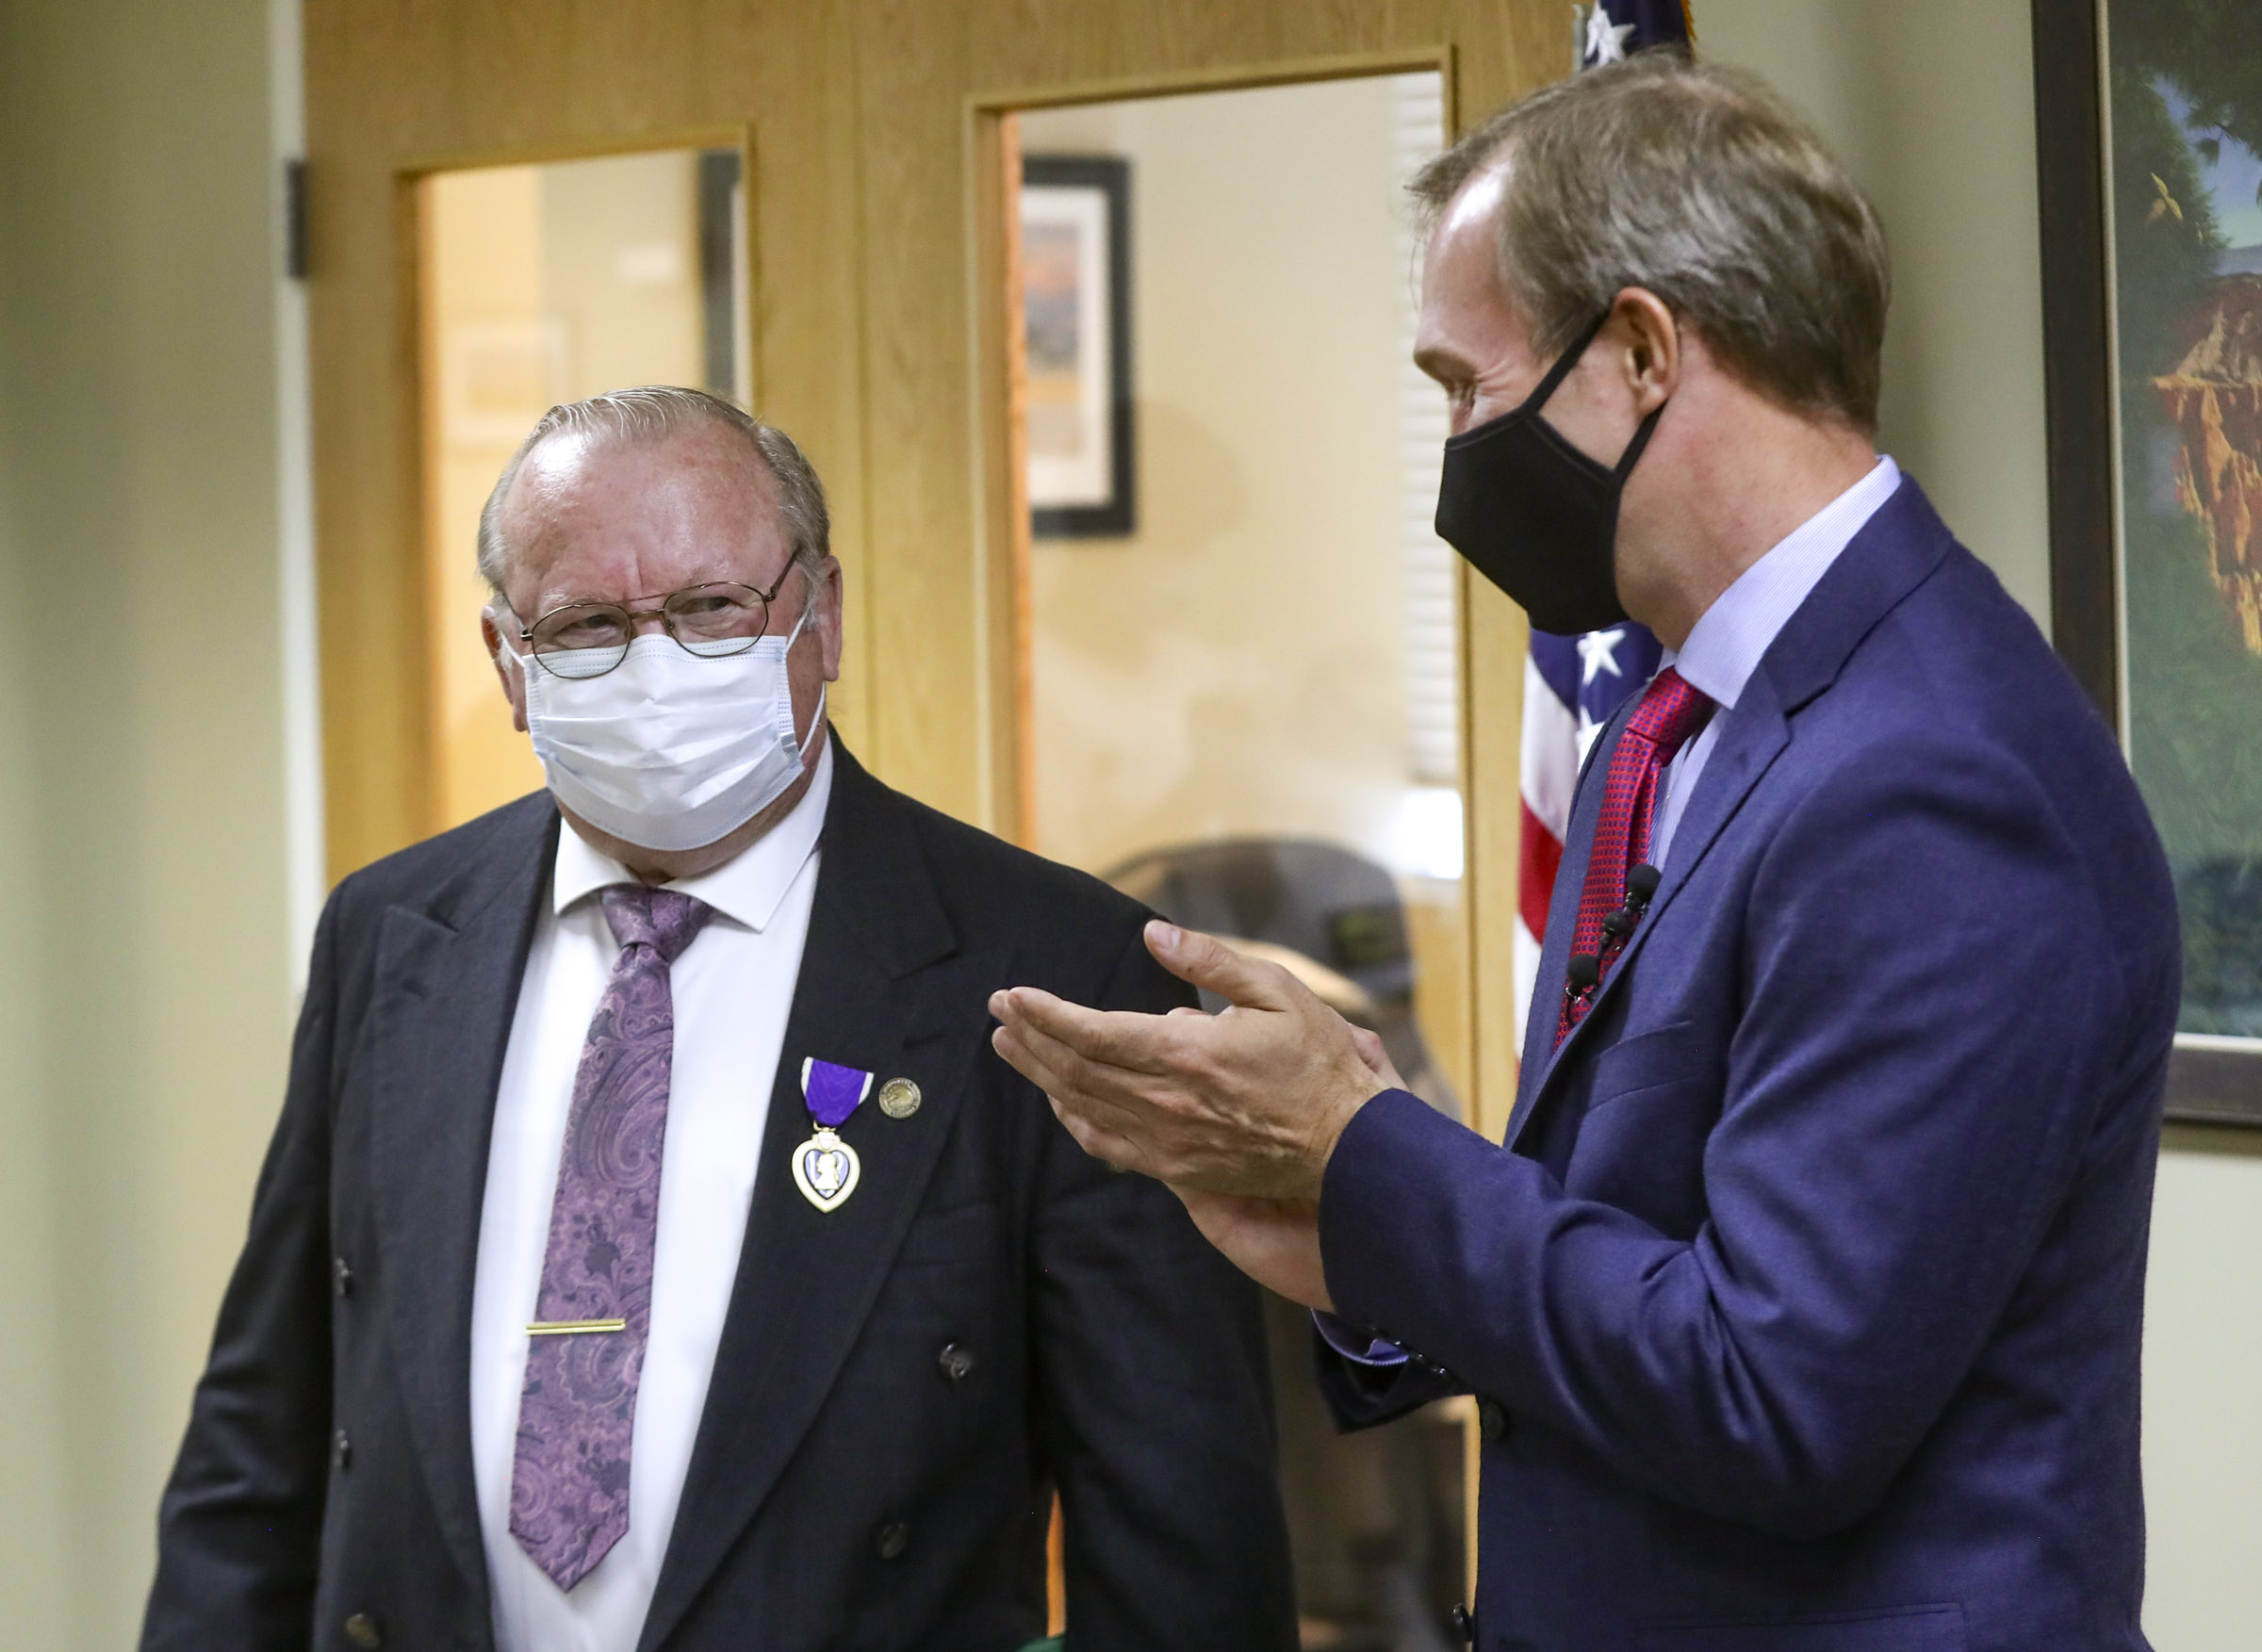 Douglas W. Evans smiles from under his mask after being presented the Purple Heart by Utah Rep. Ben McAdams, D-Utah, at McAdams' office in West Jordan on Monday, July 13, 2020. Evans received the award for wounds suffered during the Vietnam War. McAdams' staff worked with the Department of Defense on behalf of the Evans family to untangle a paperwork issue that for 50 years prevented the medal citation from being included in his official Army record.